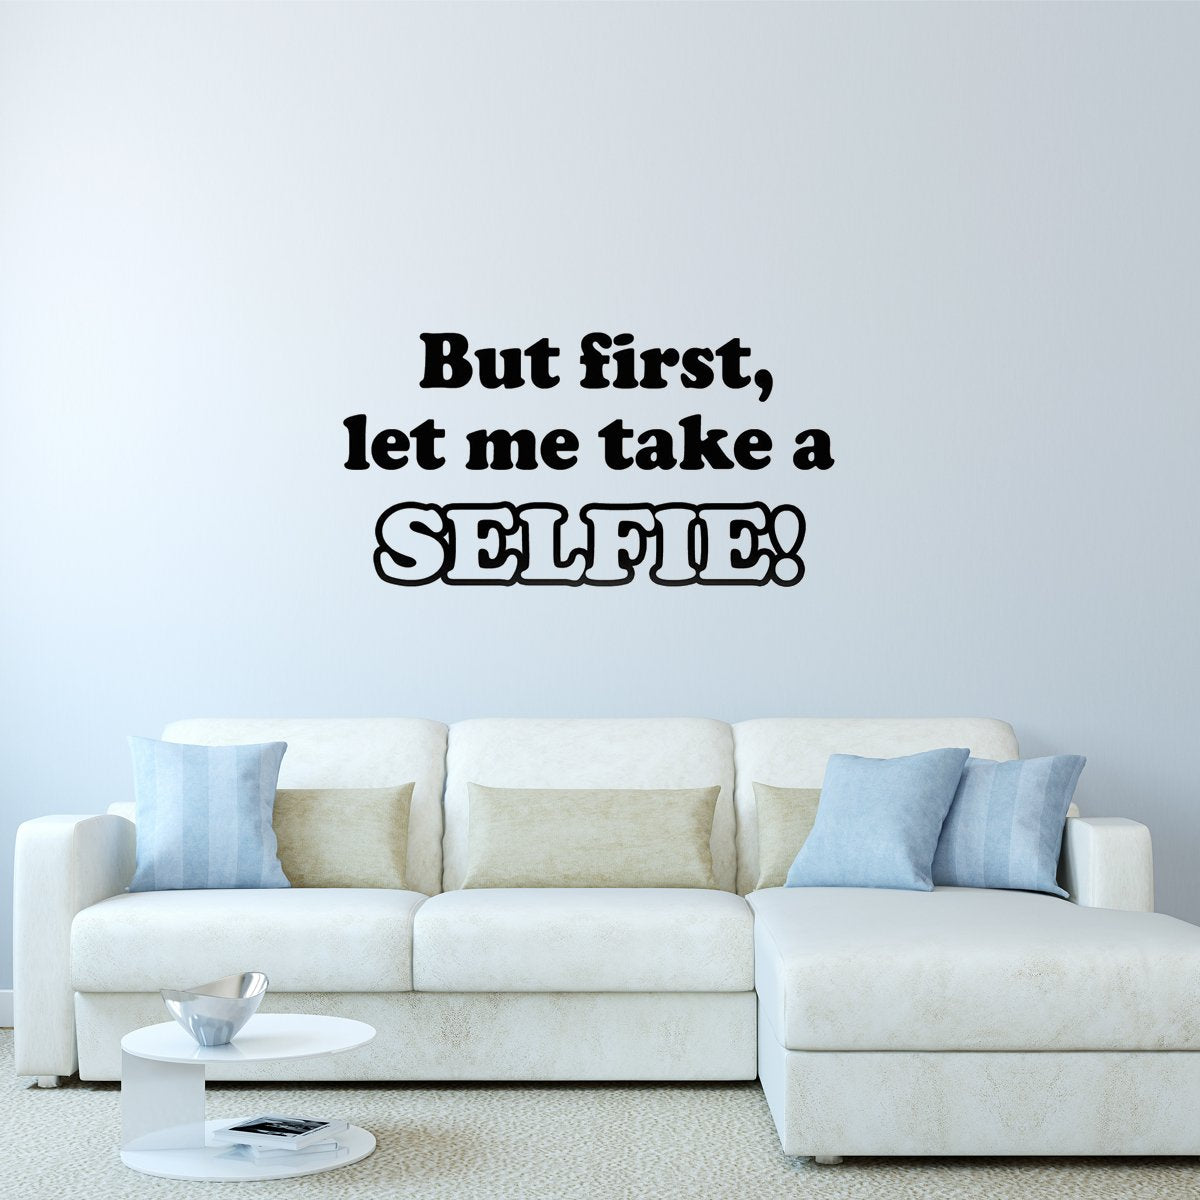 VWAQ But First Let Me Take a Selfie Vinyl Wall Decal - VWAQ Vinyl Wall Art Quotes and Prints